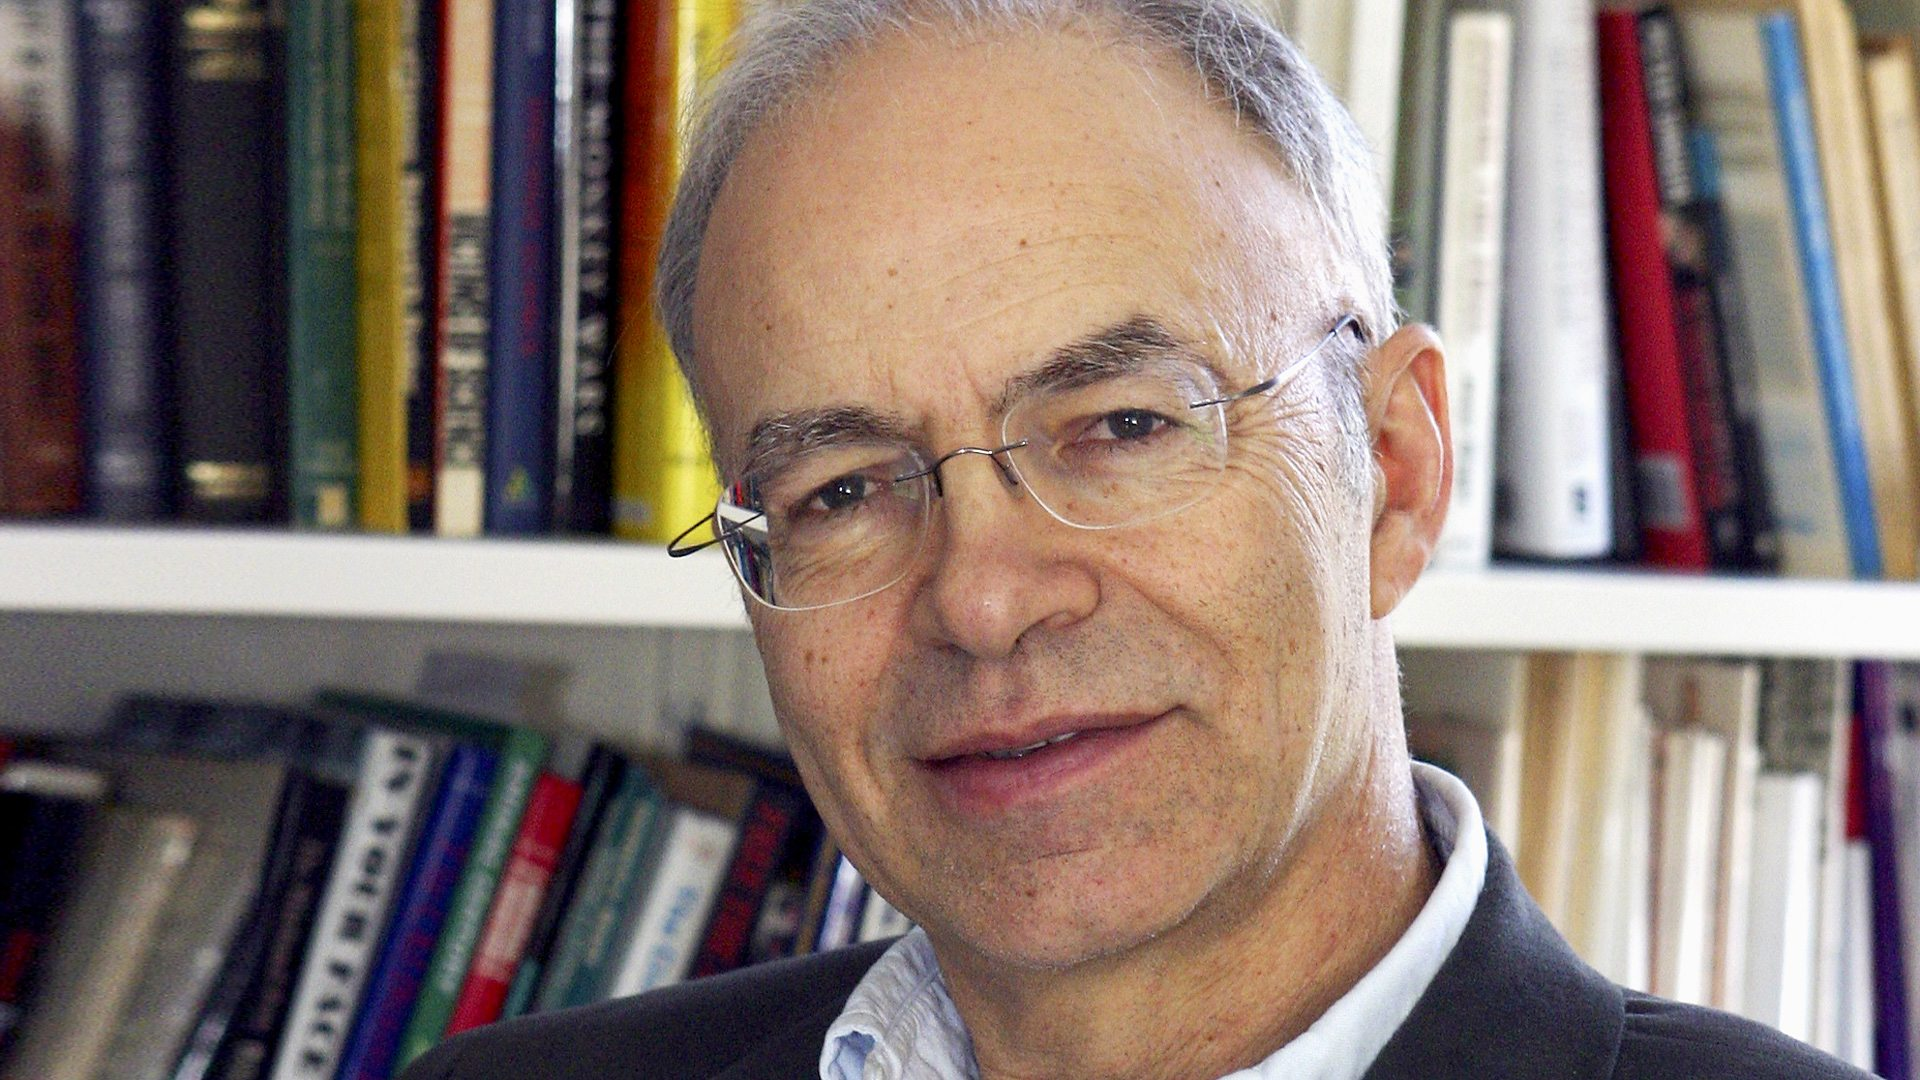 bbc radio thinking peter singer